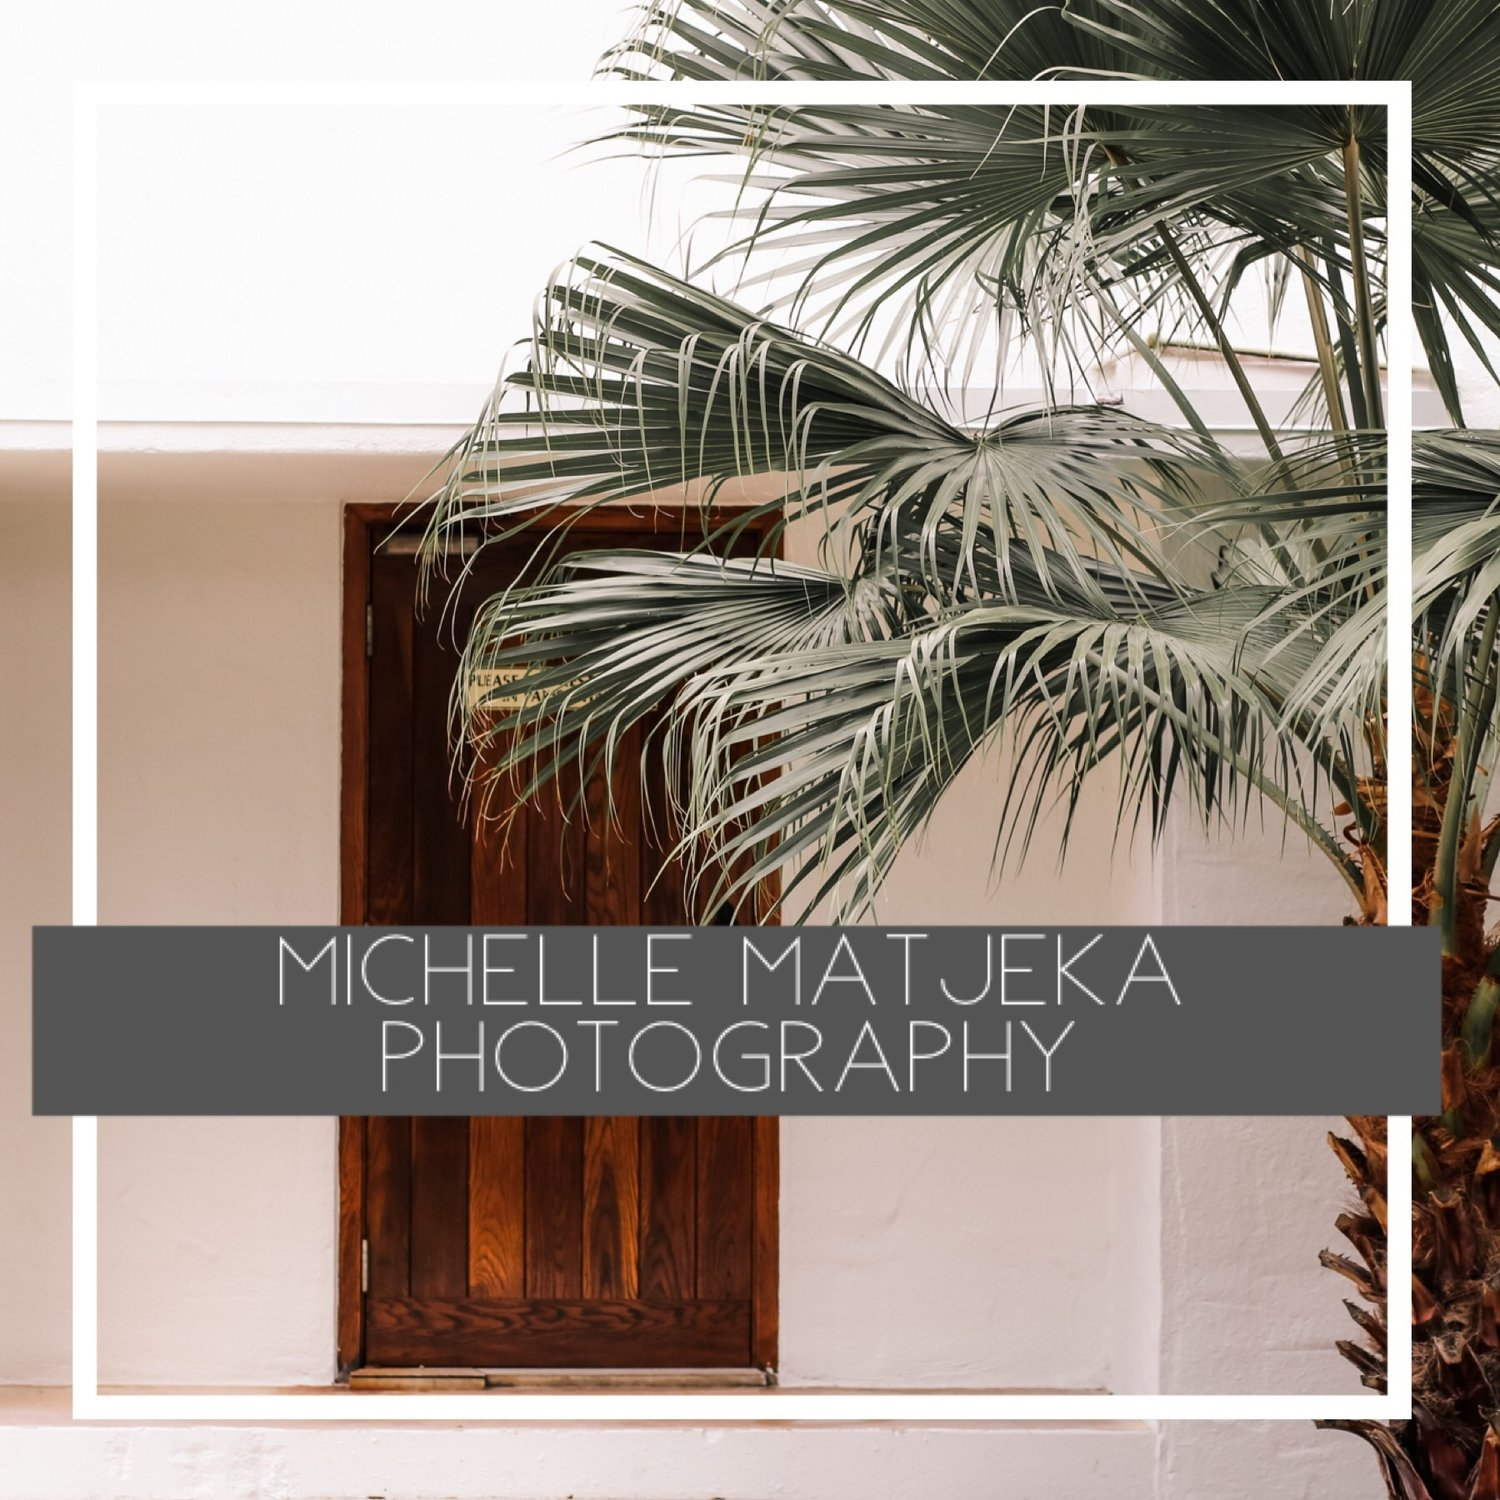 Michelle Matjeka Photography